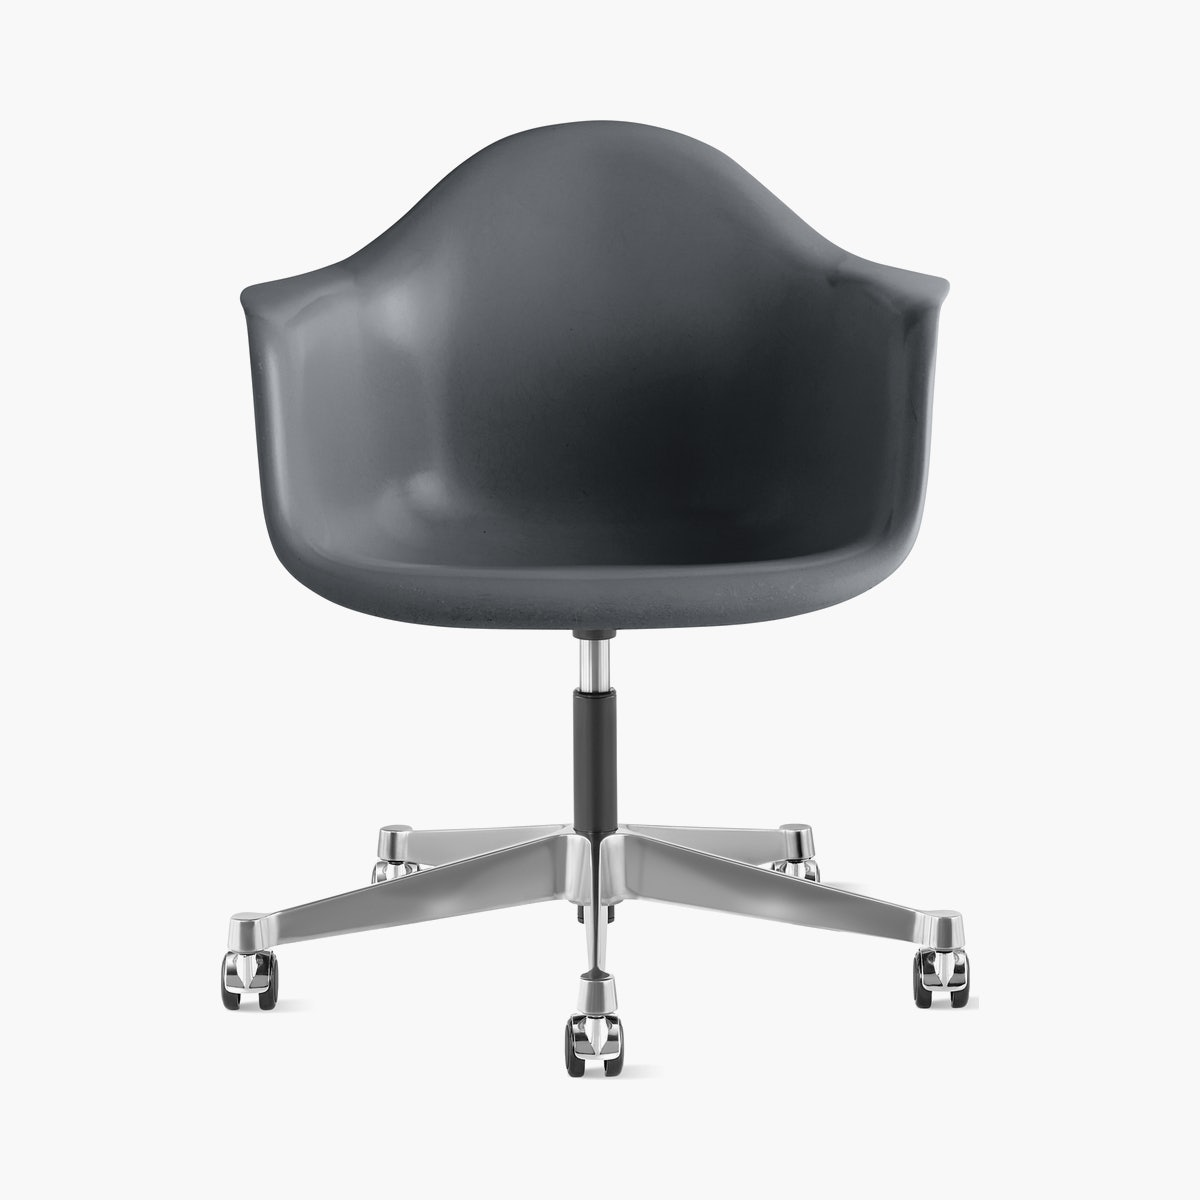 Eames Task Chair, Molded Fiberglass Armchair